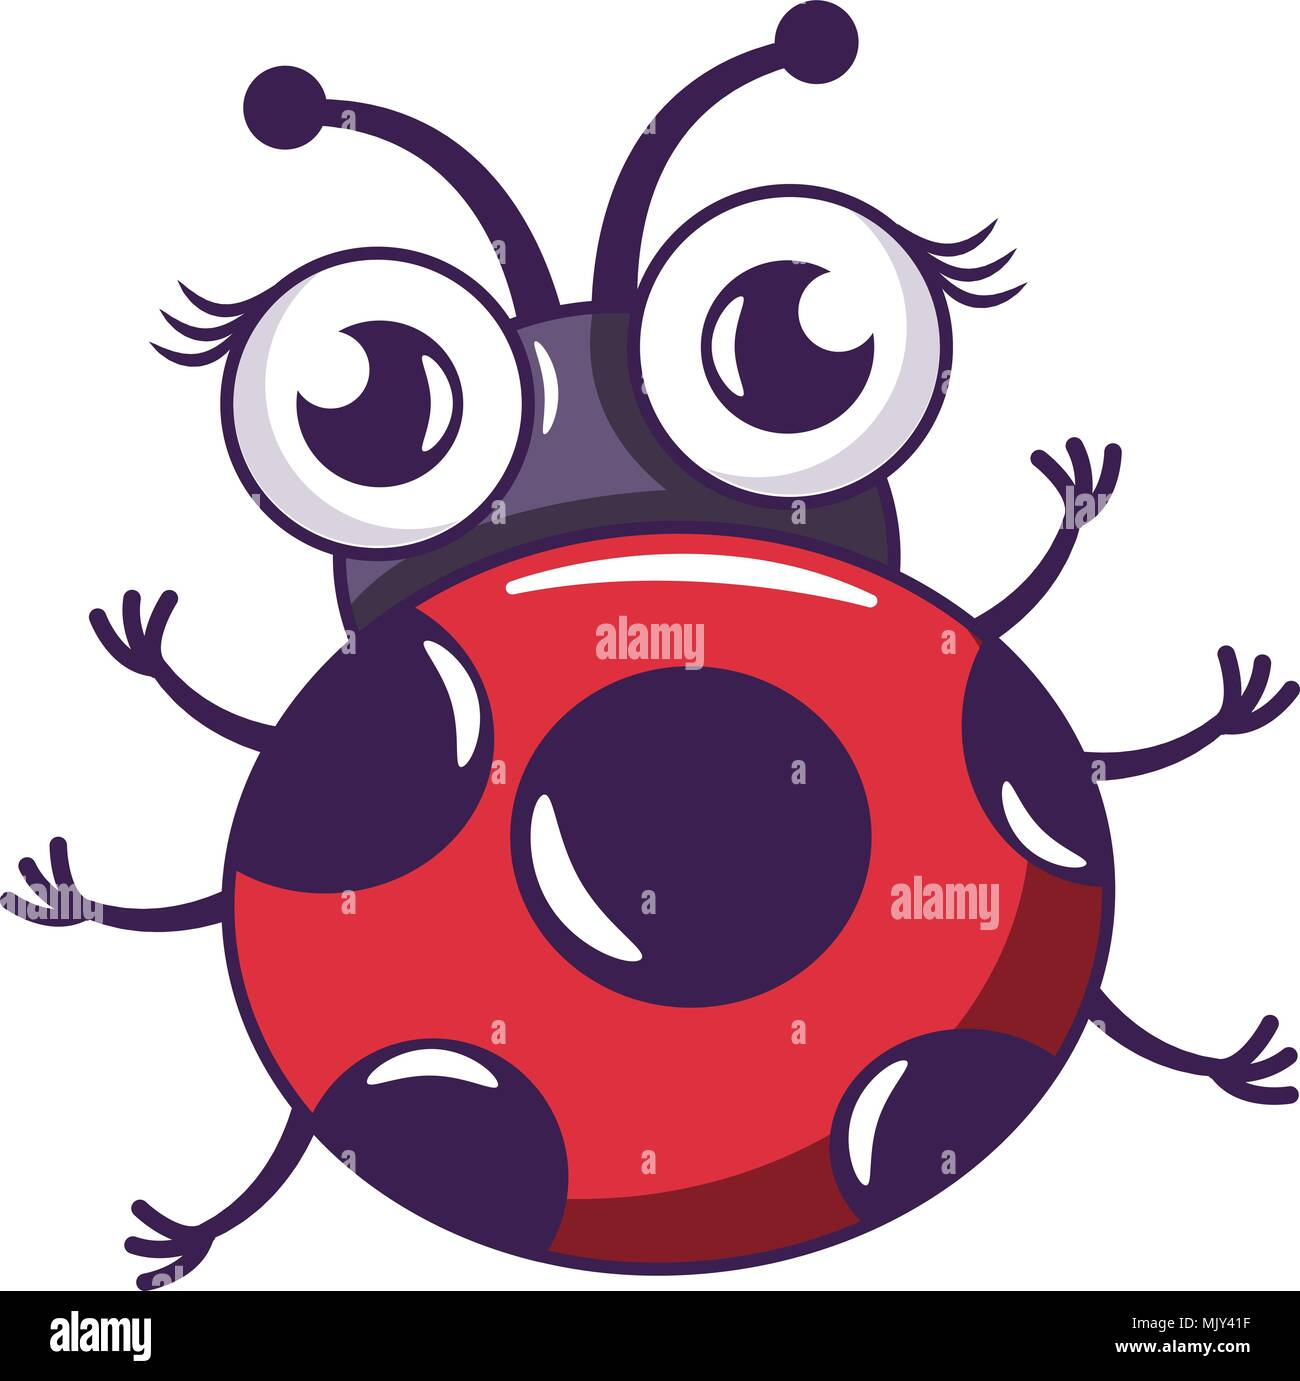 A Cartoon Ladybug cartoon ladybug stock photos & cartoon ladybug stock images